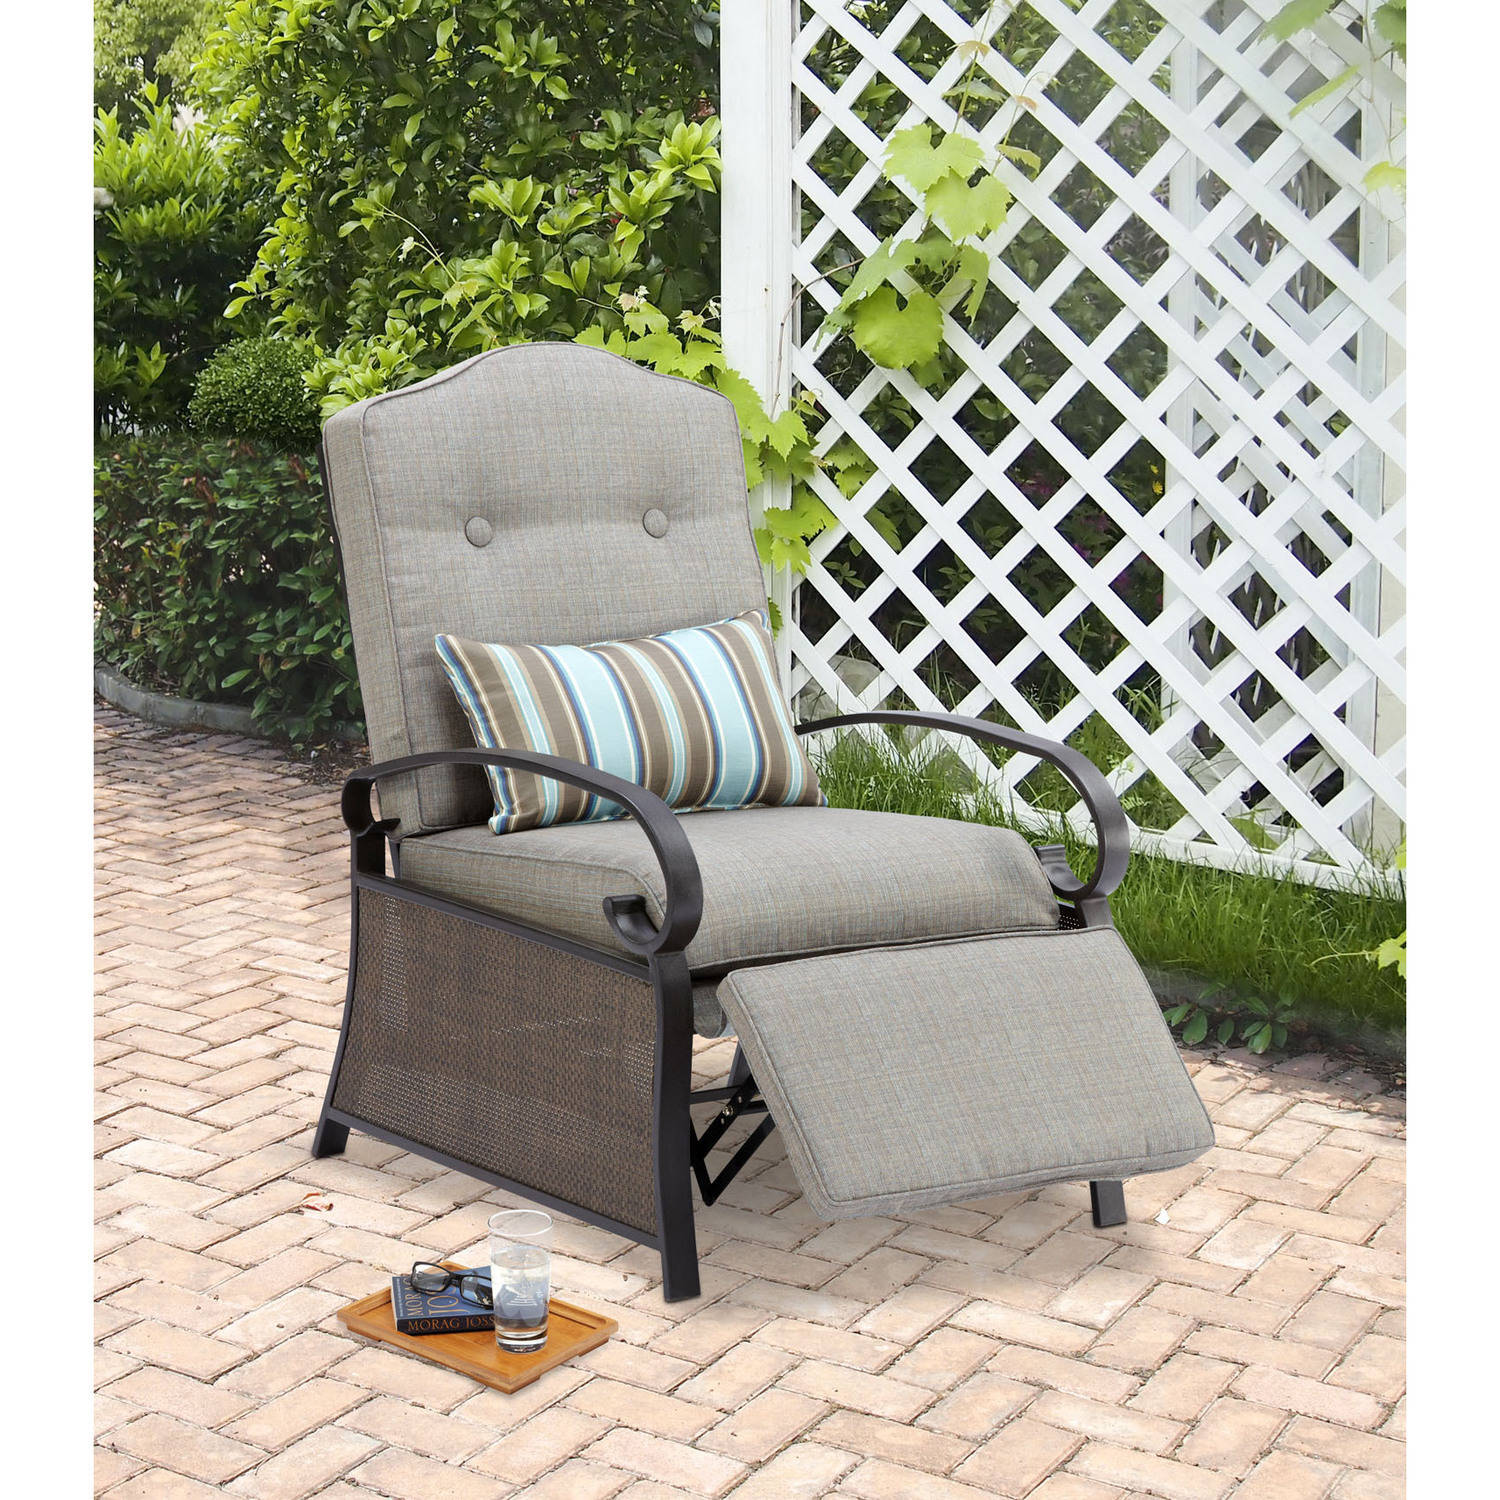 Mainstays Outdoor Recliner, Ashwood